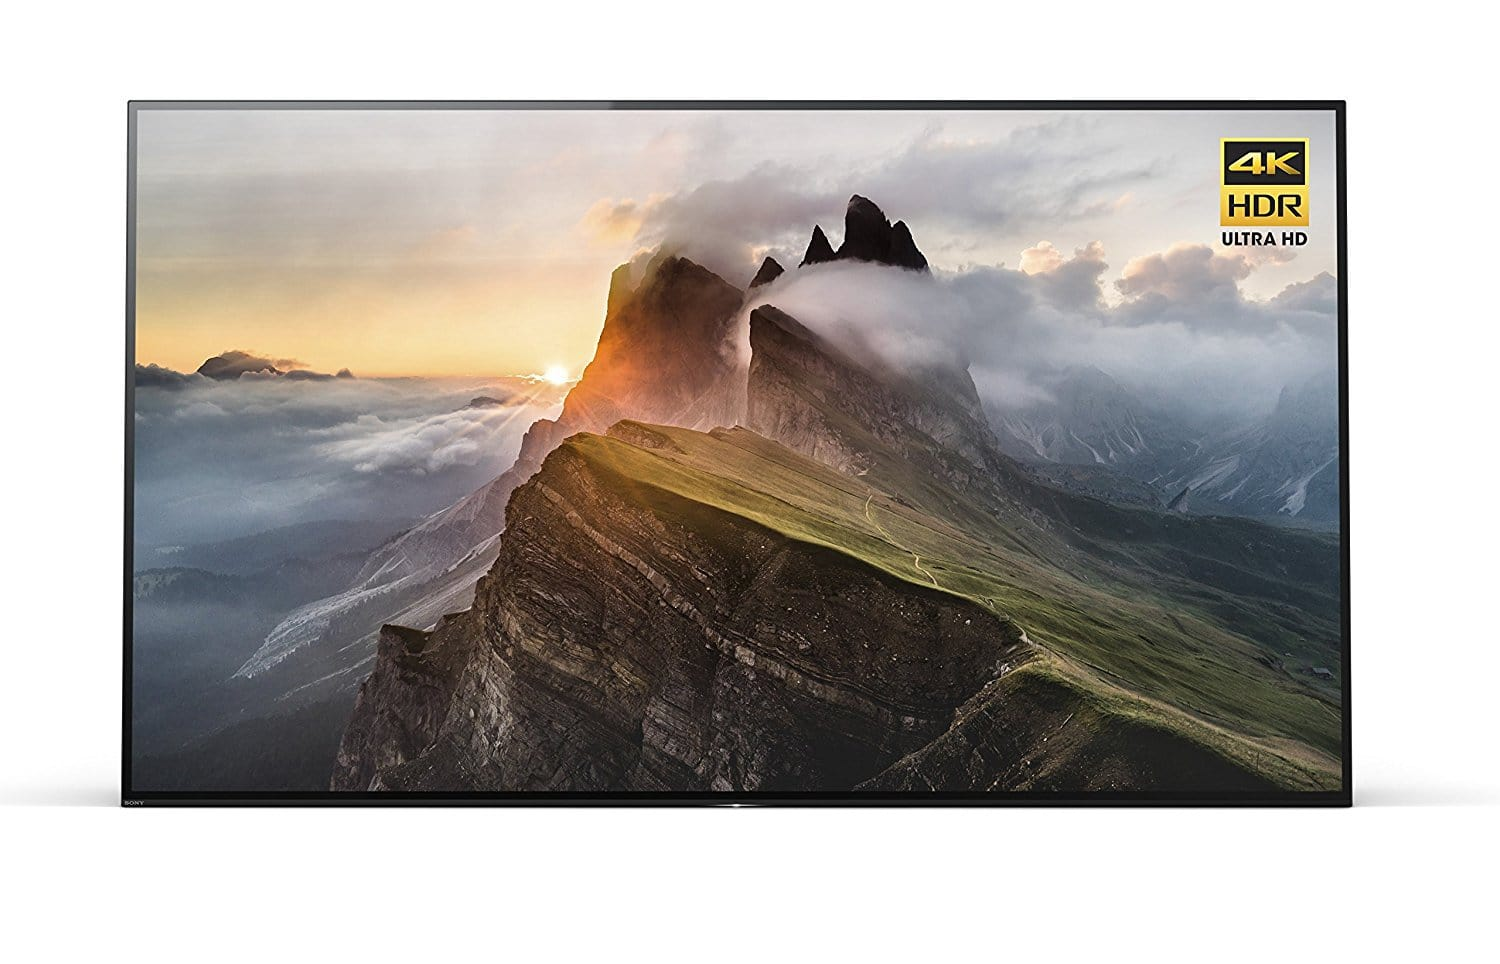 Kết quả hình ảnh cho Sony A1E (XBR65A1E) 4K UHD OLED TV review: This could be the best OLED TV money can buy